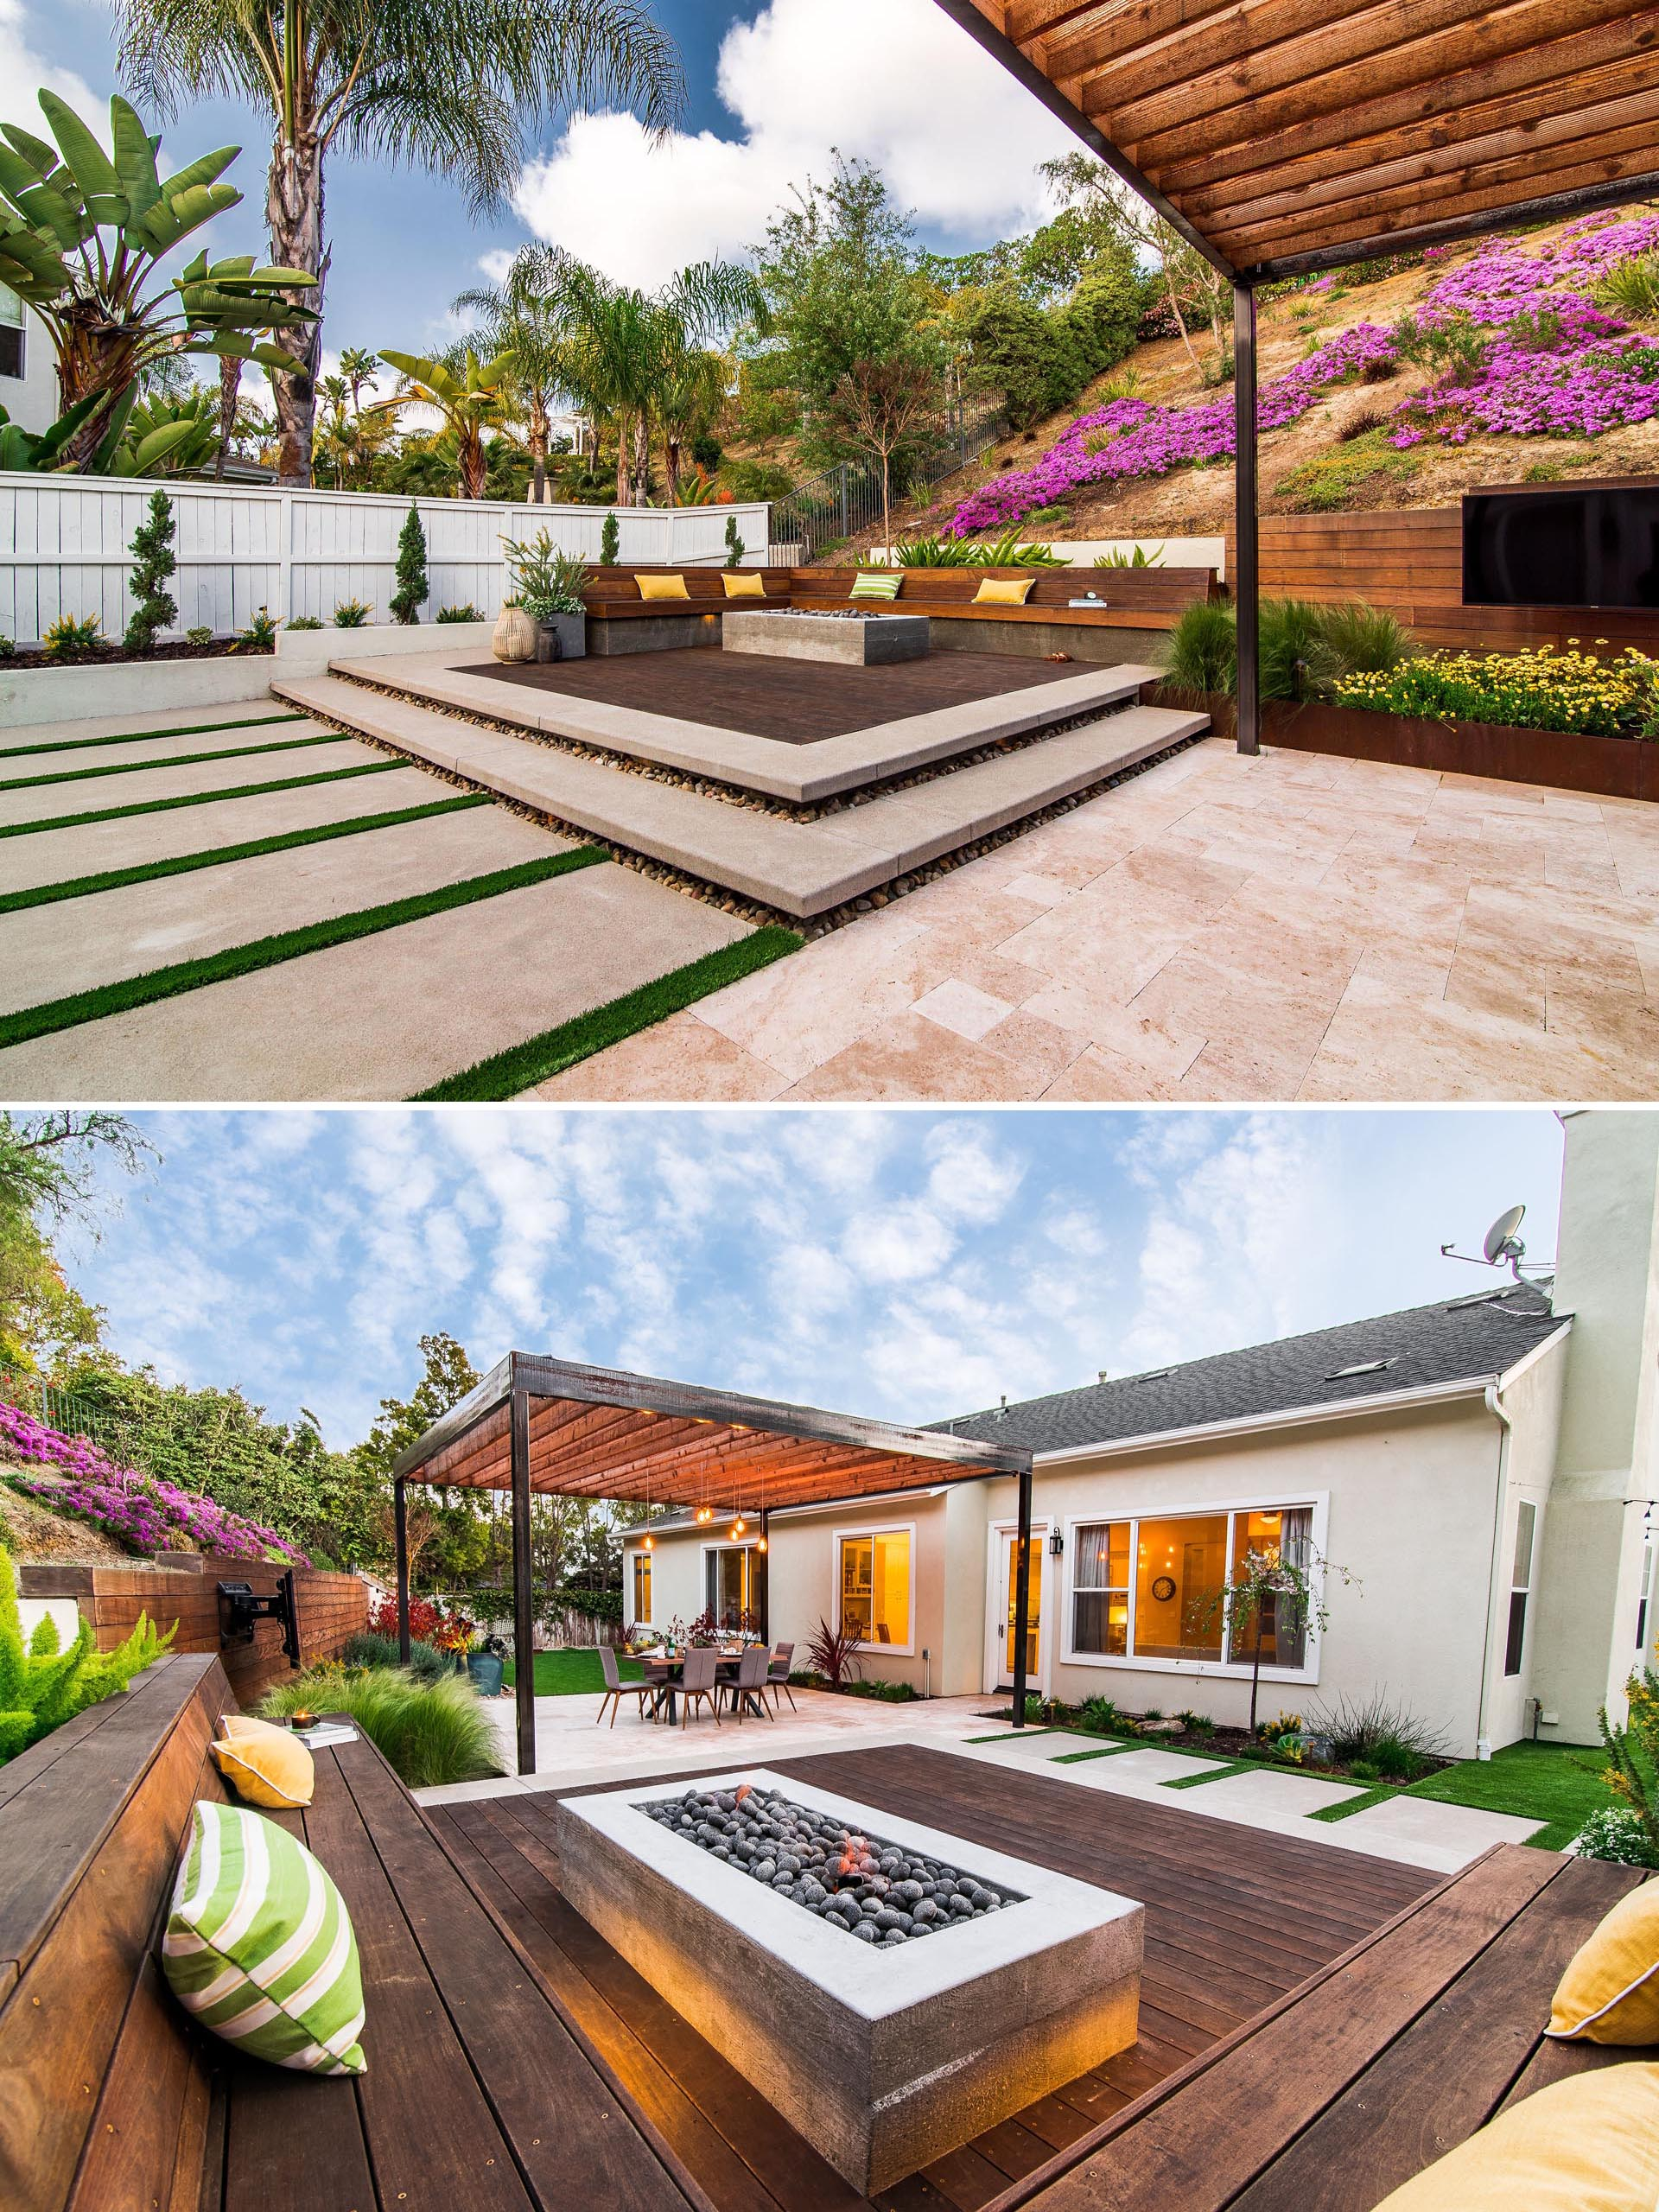 A modern yard with a raised seating area with a fire pit.